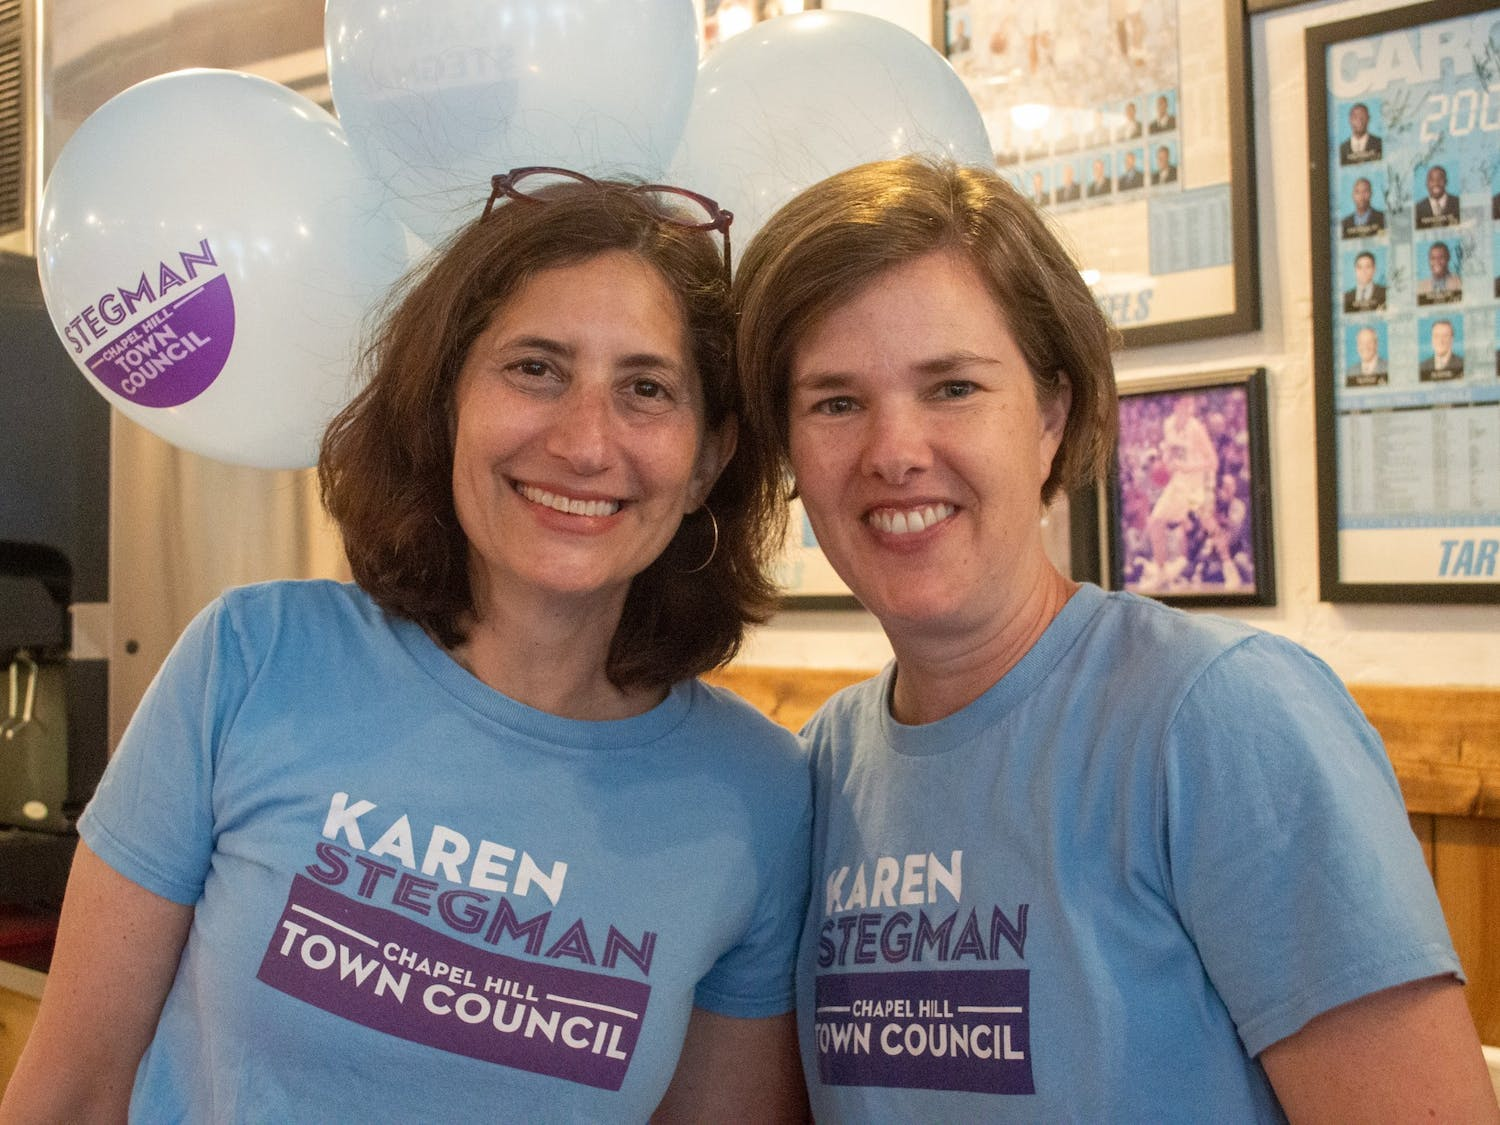 Council Member Karen Stegman smiles with her wife, Alyson Grine, at Italian Pizzeria III on Saturday June, 12, 2021, to celebrate Karen's reelection campaign.